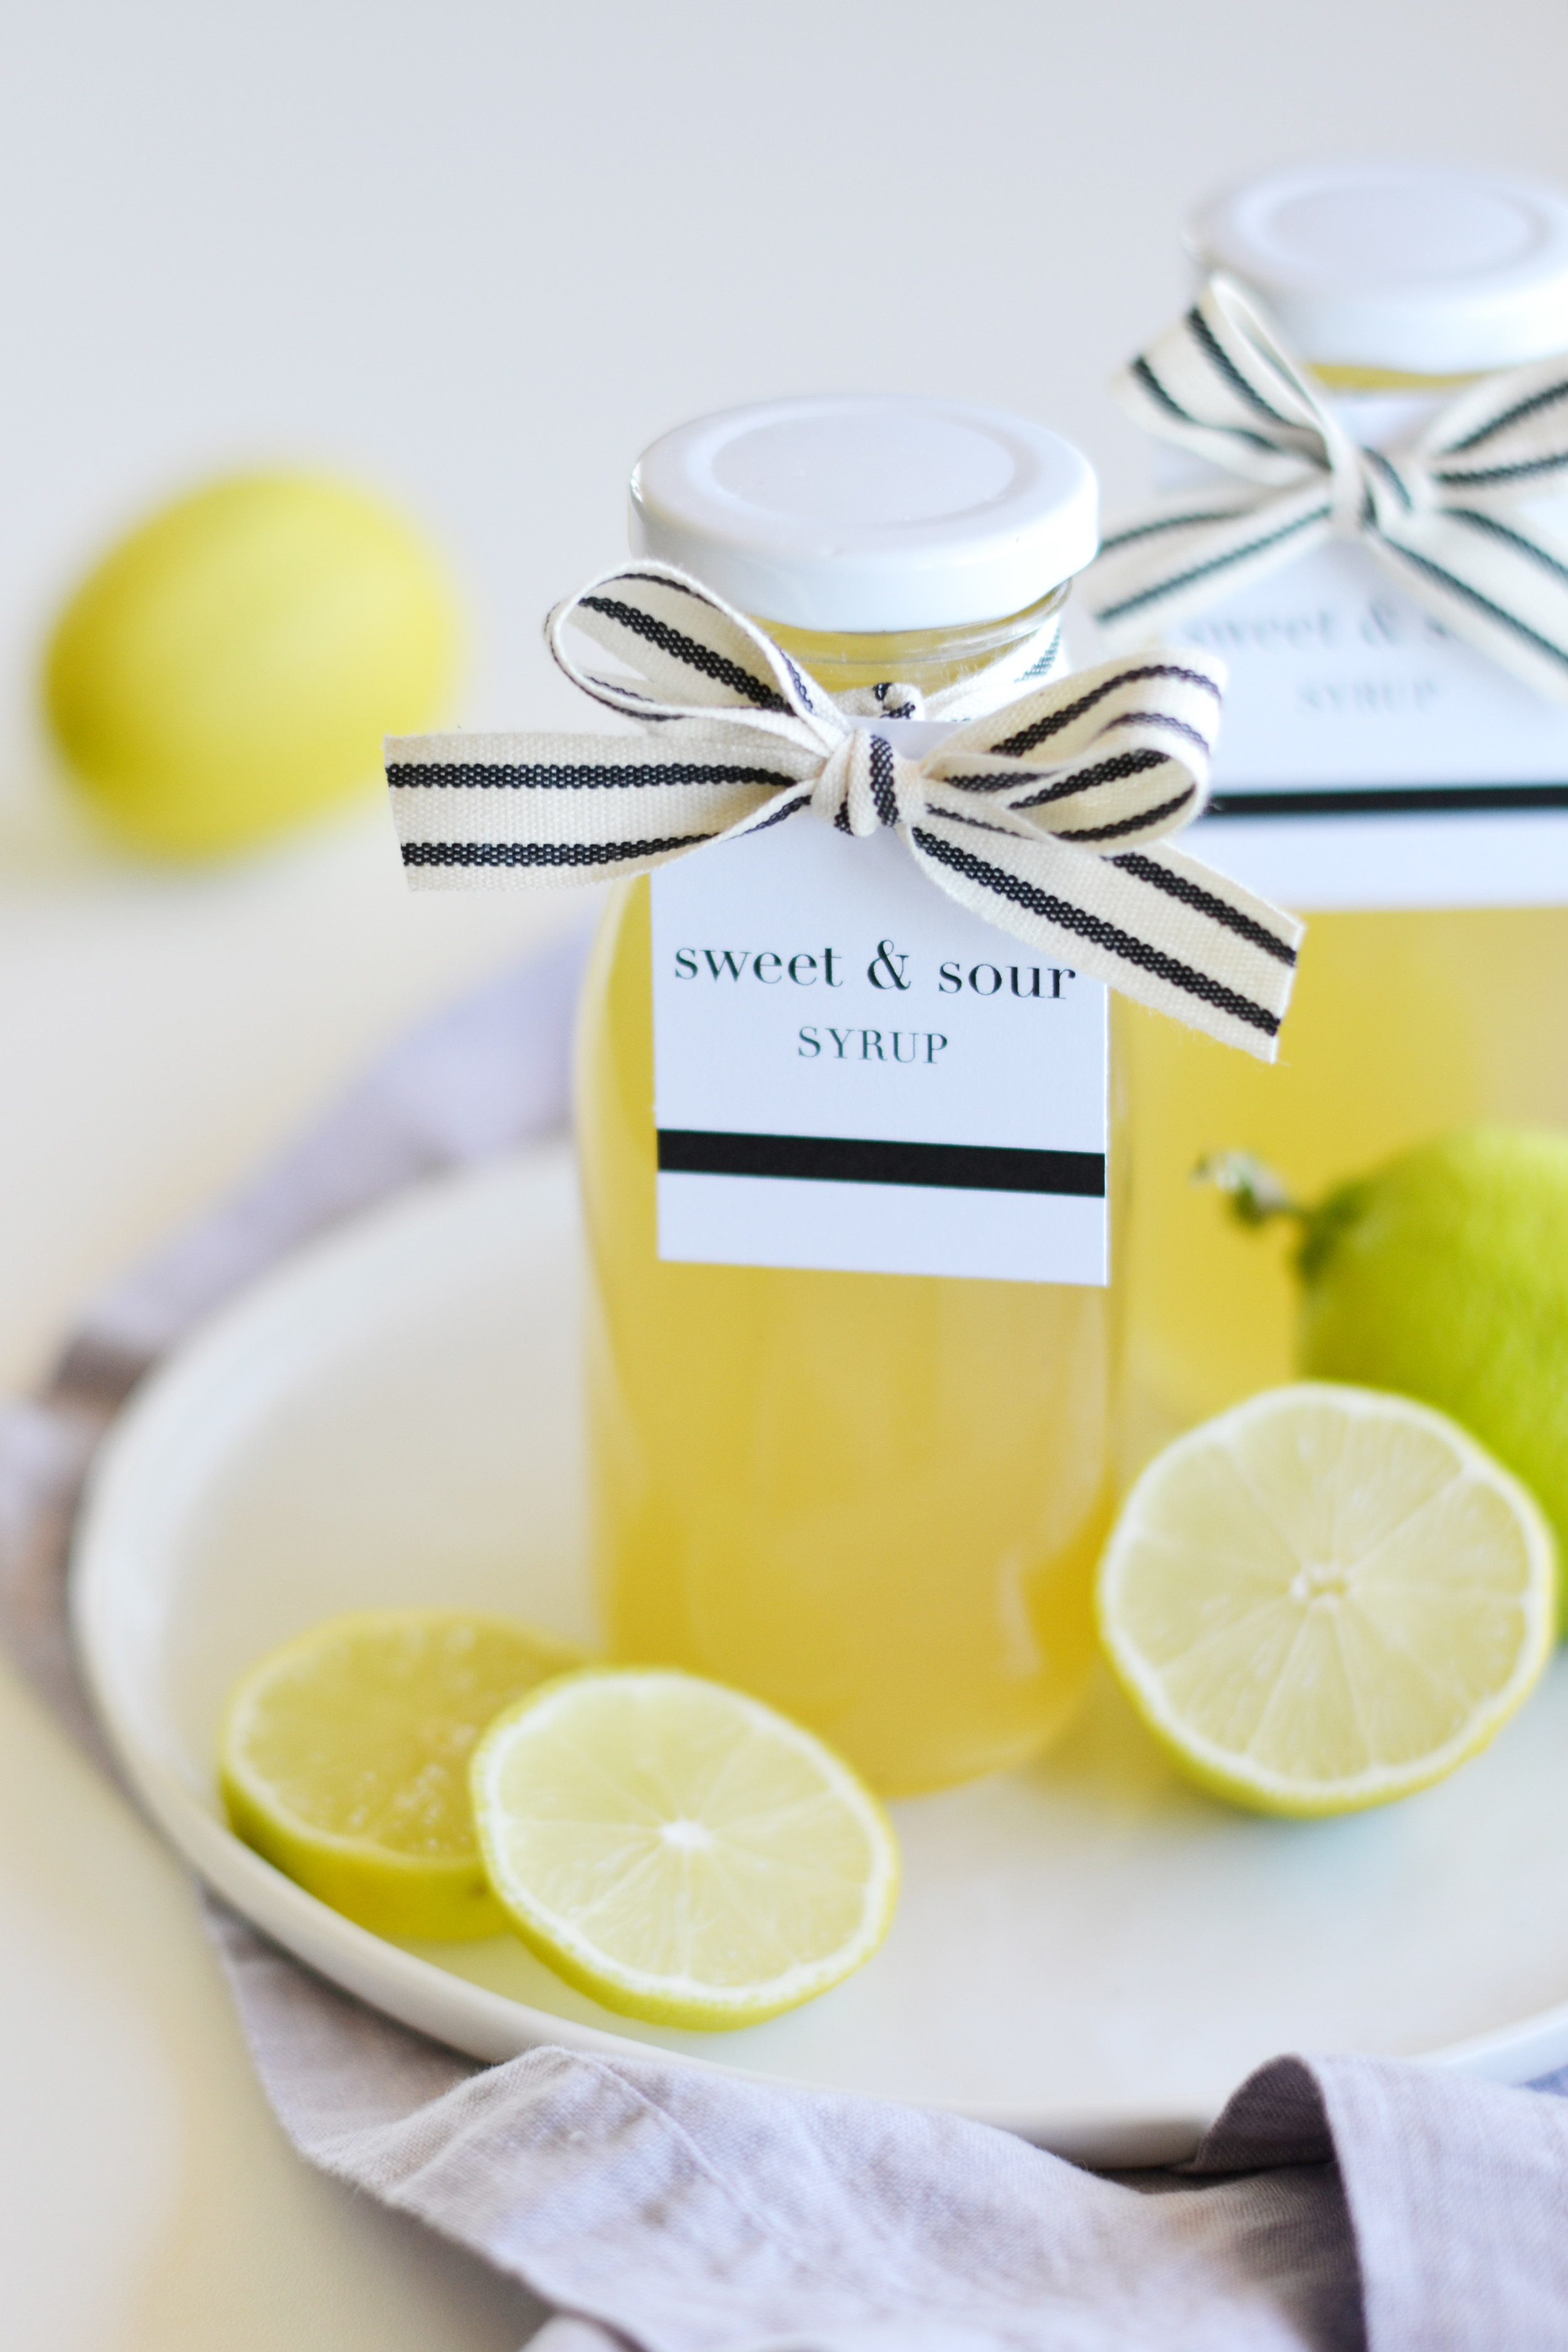 Delicious sour mix homemade and bottled up for gifting! boxwoodavenue.com